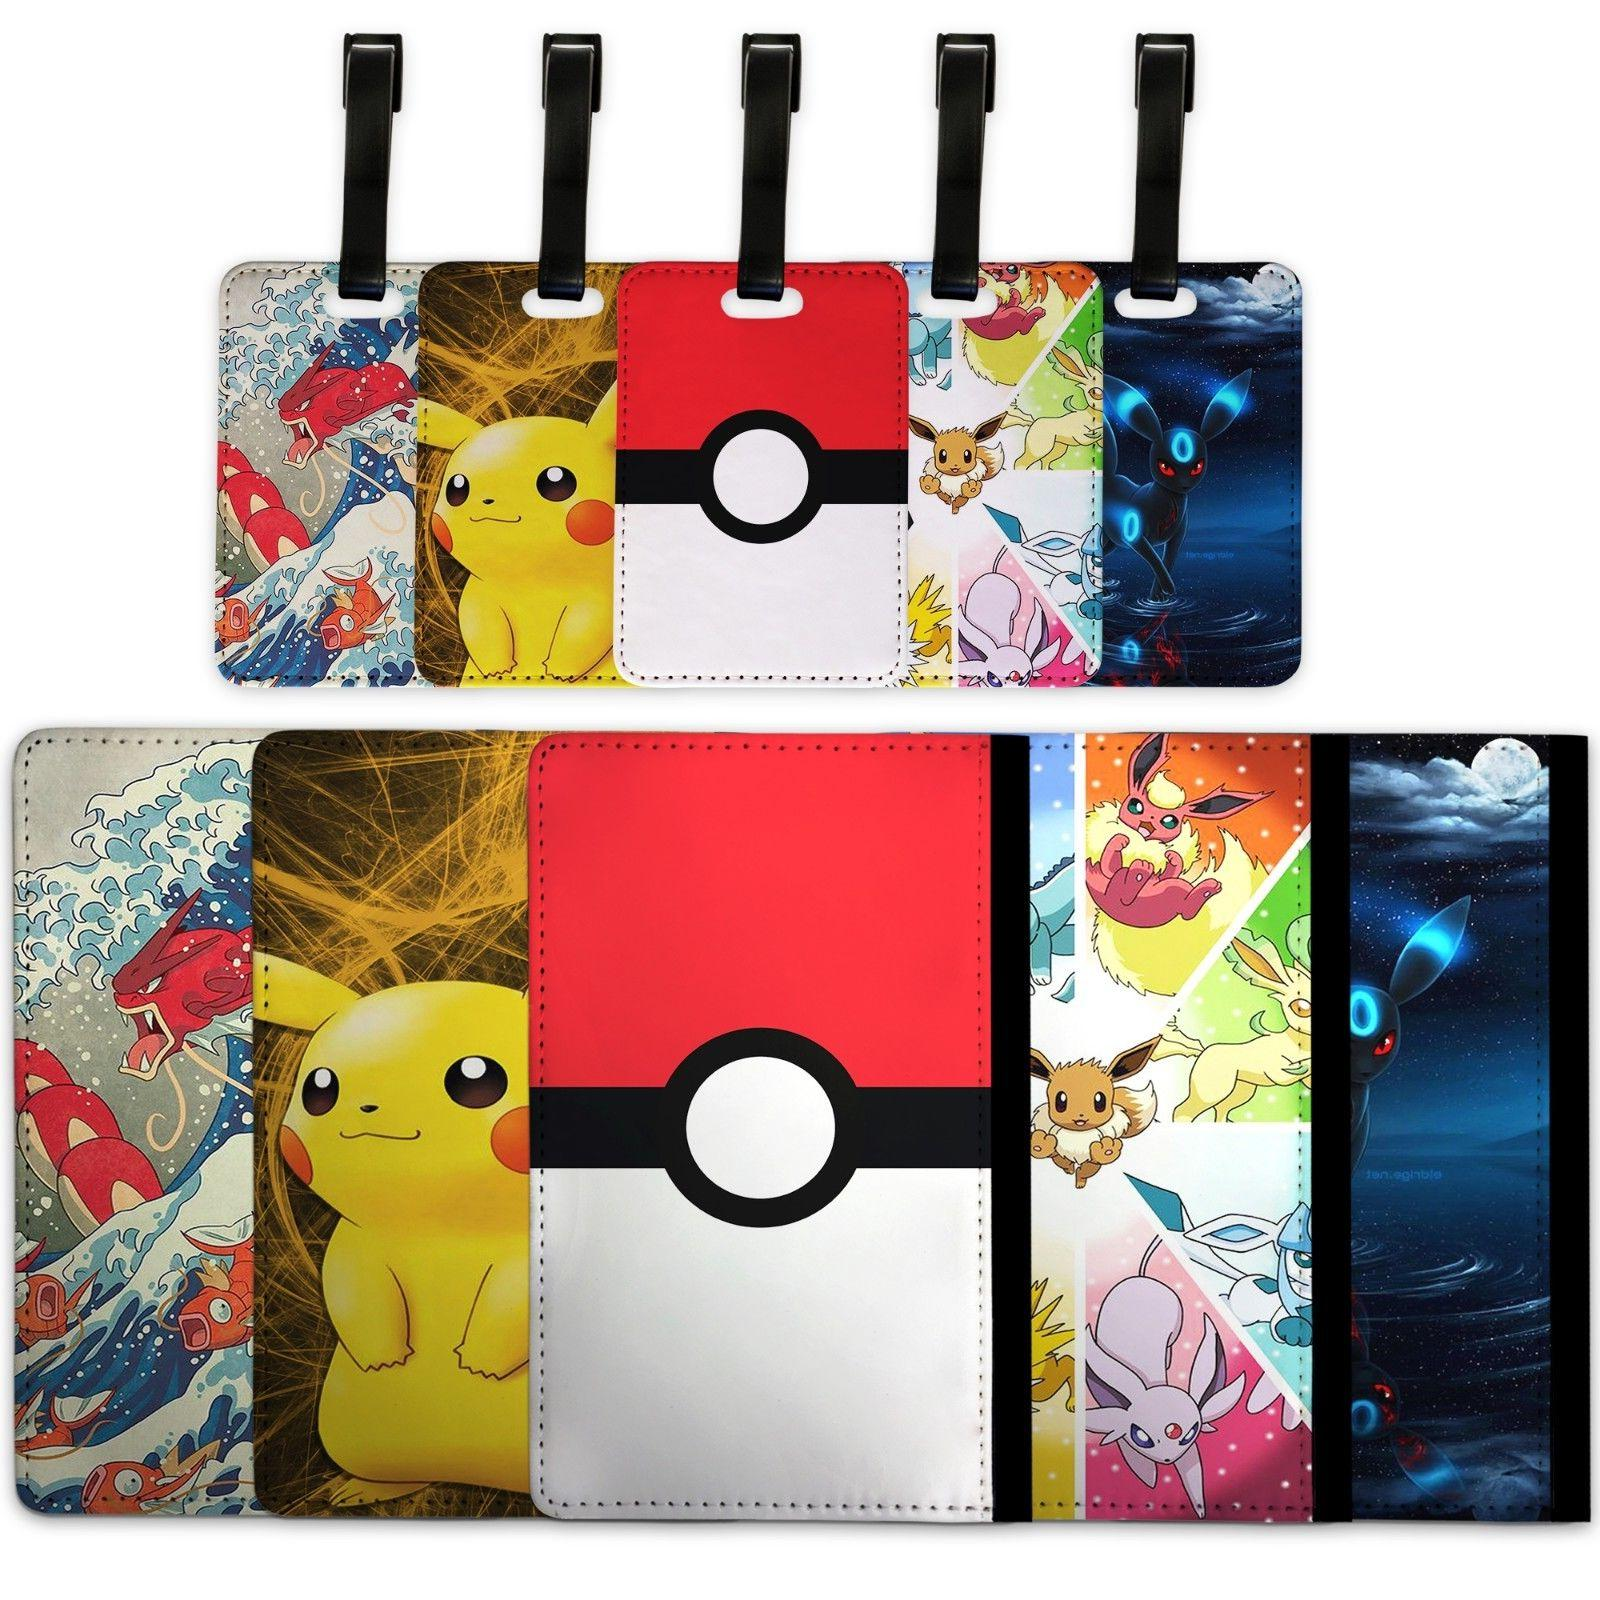 pokemon passport cover and luggage tag travel